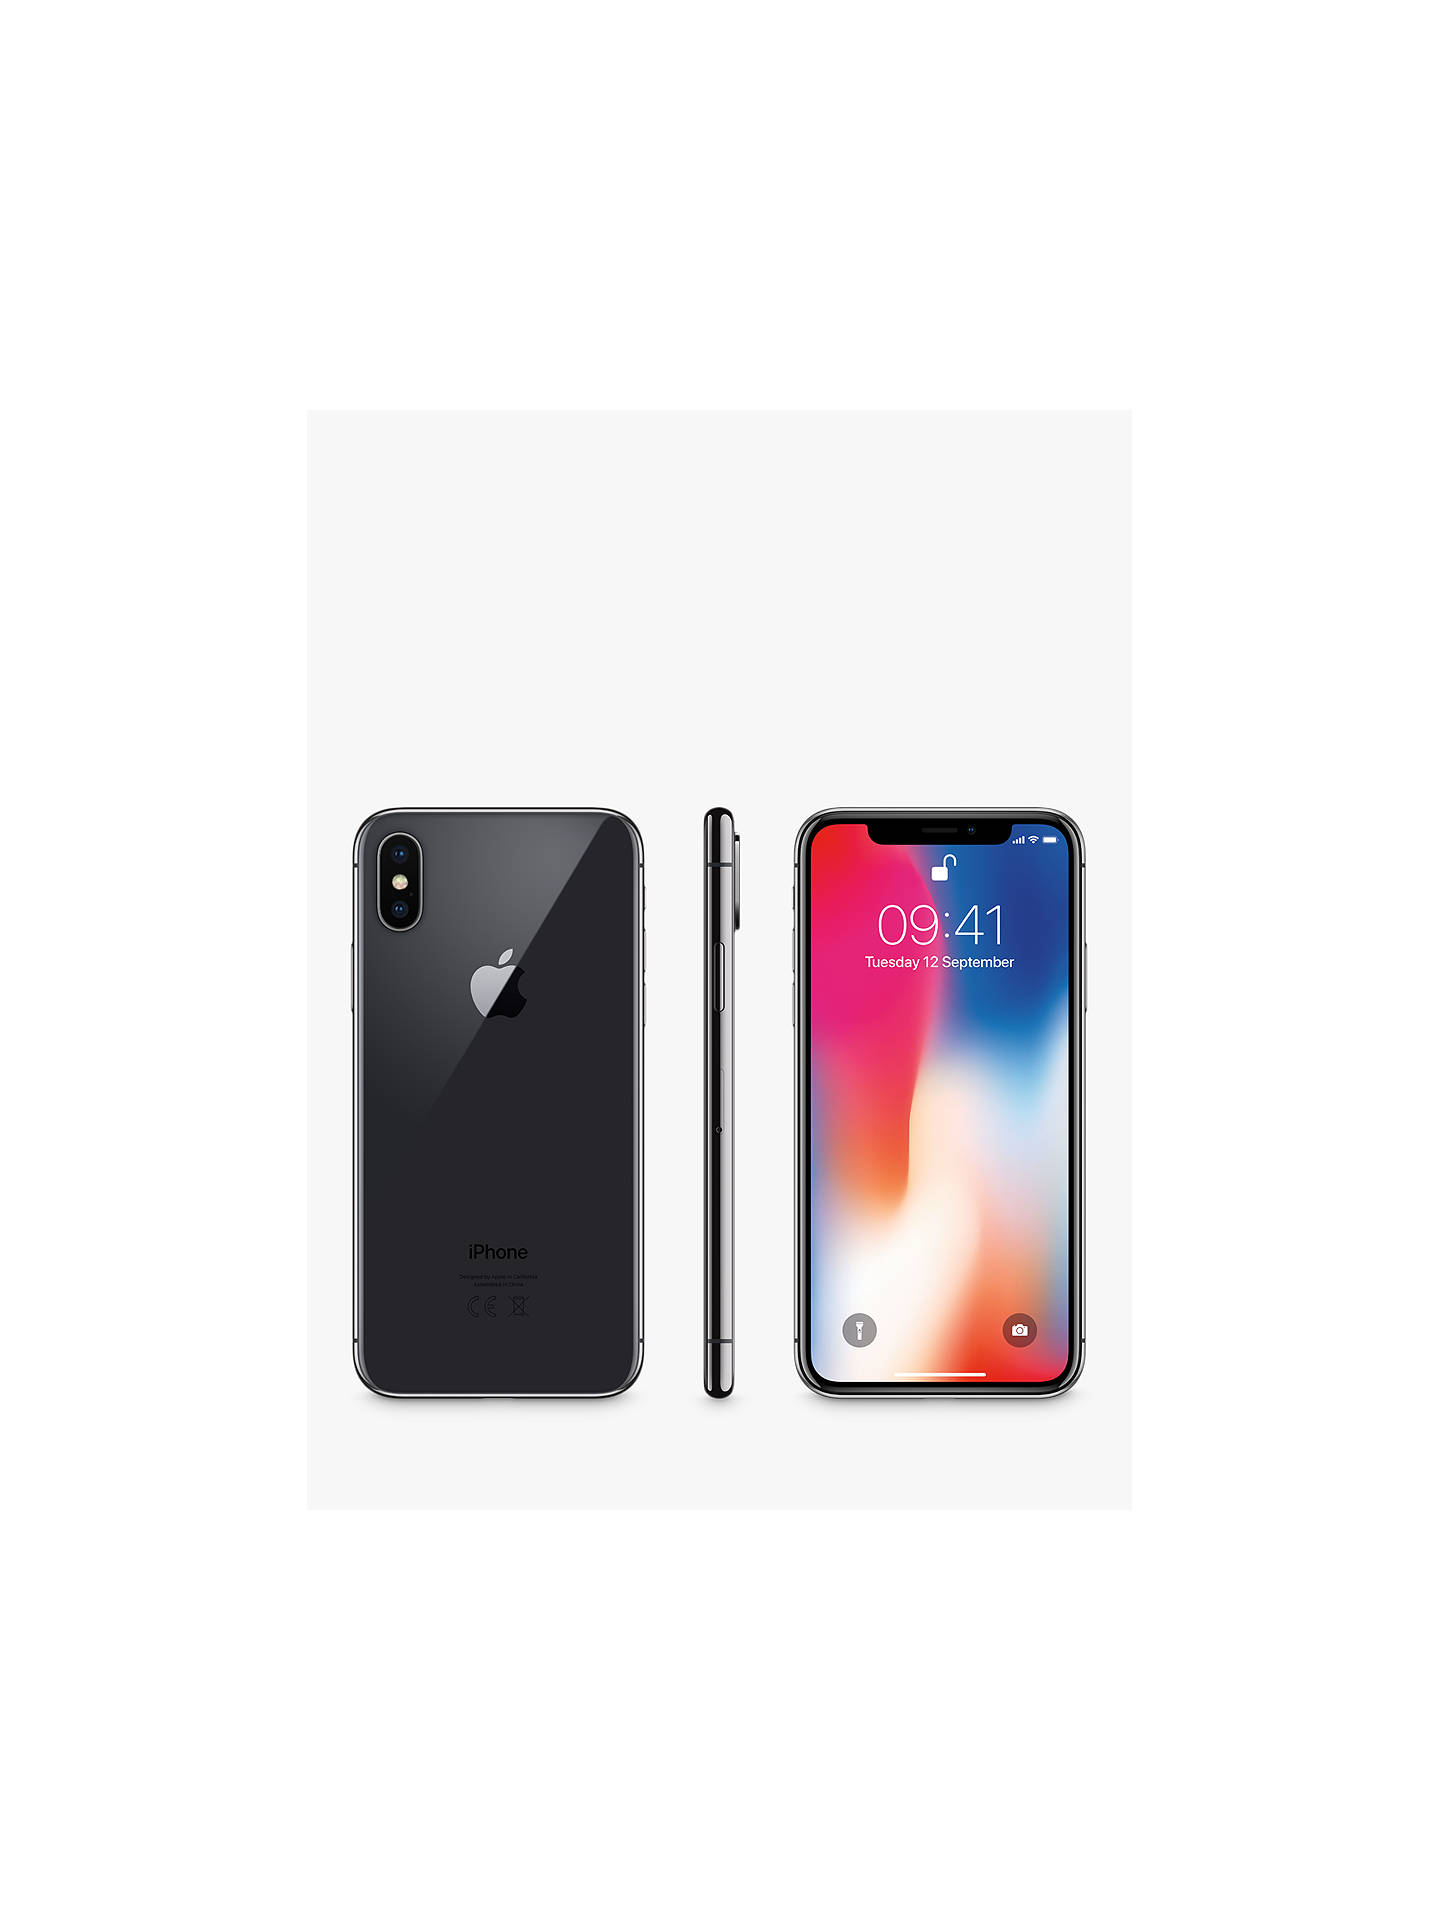 0dfdad5388 Apple iPhone X, iOS 11, 5.8